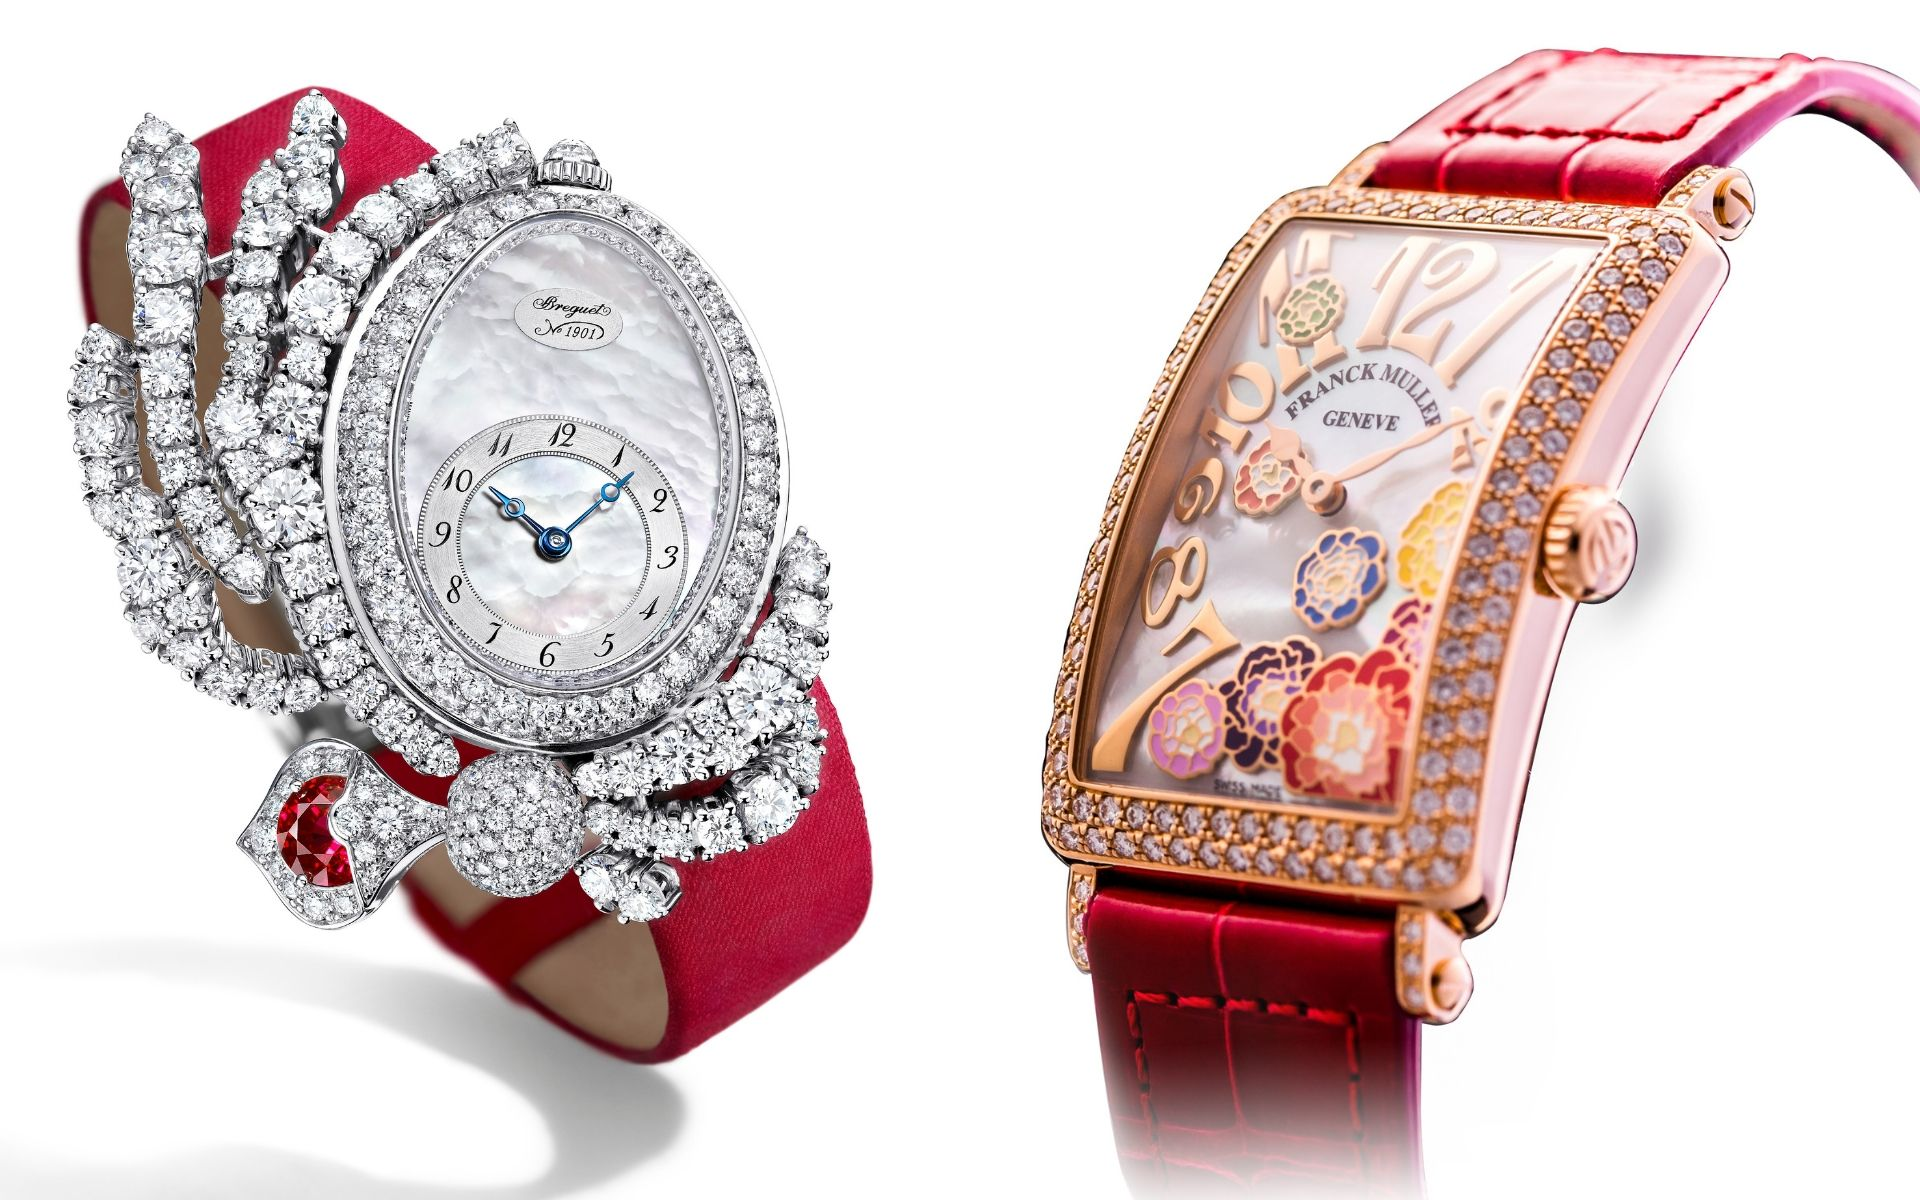 Usher In The Lunar New Year With These 6 Watches In Auspicious Red